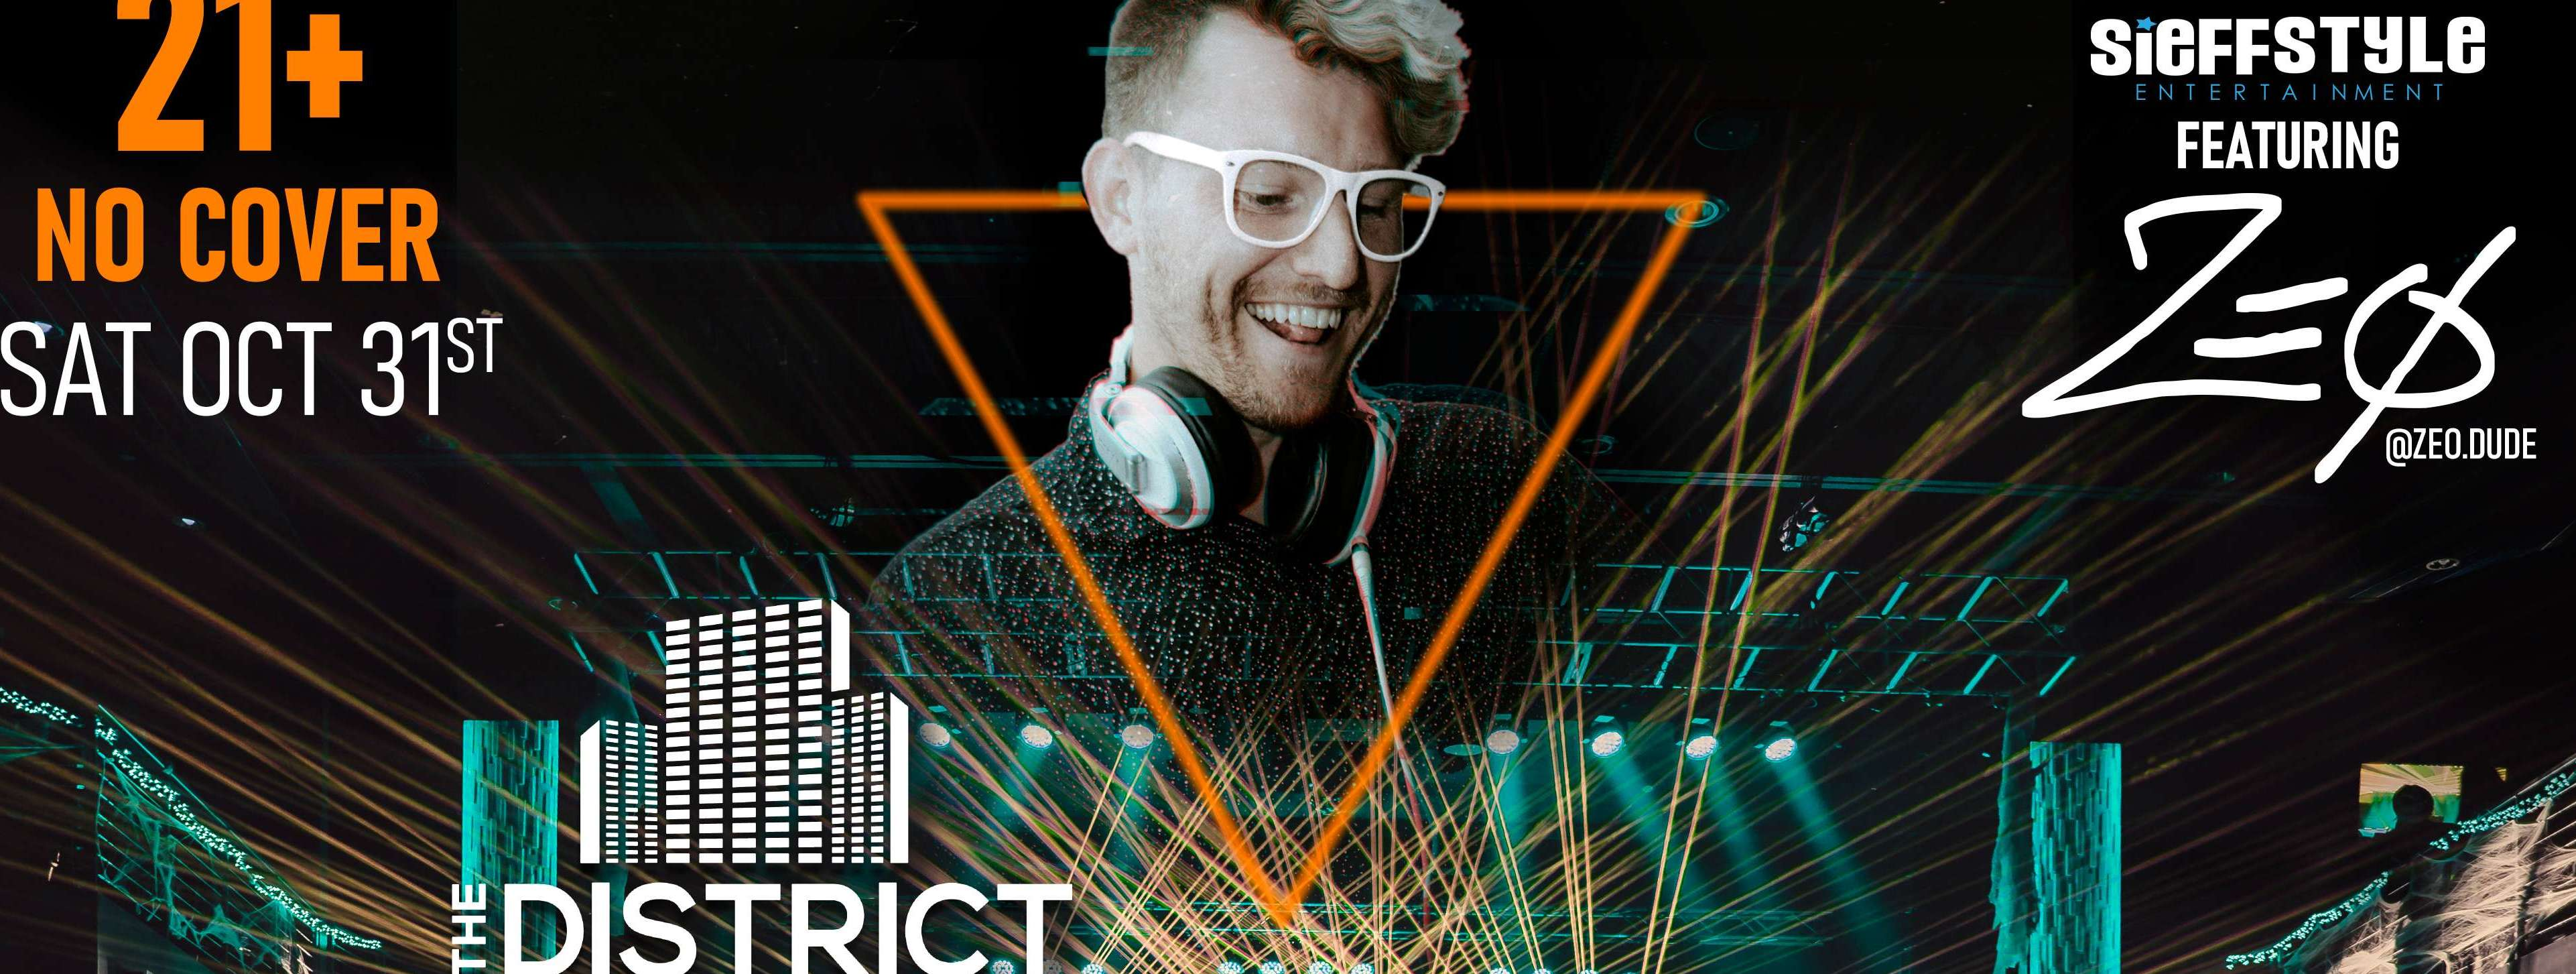 The District Halloween 2020 Sioux Falls Sd Concert Venue, Live Music | Sioux Falls, SD | The District